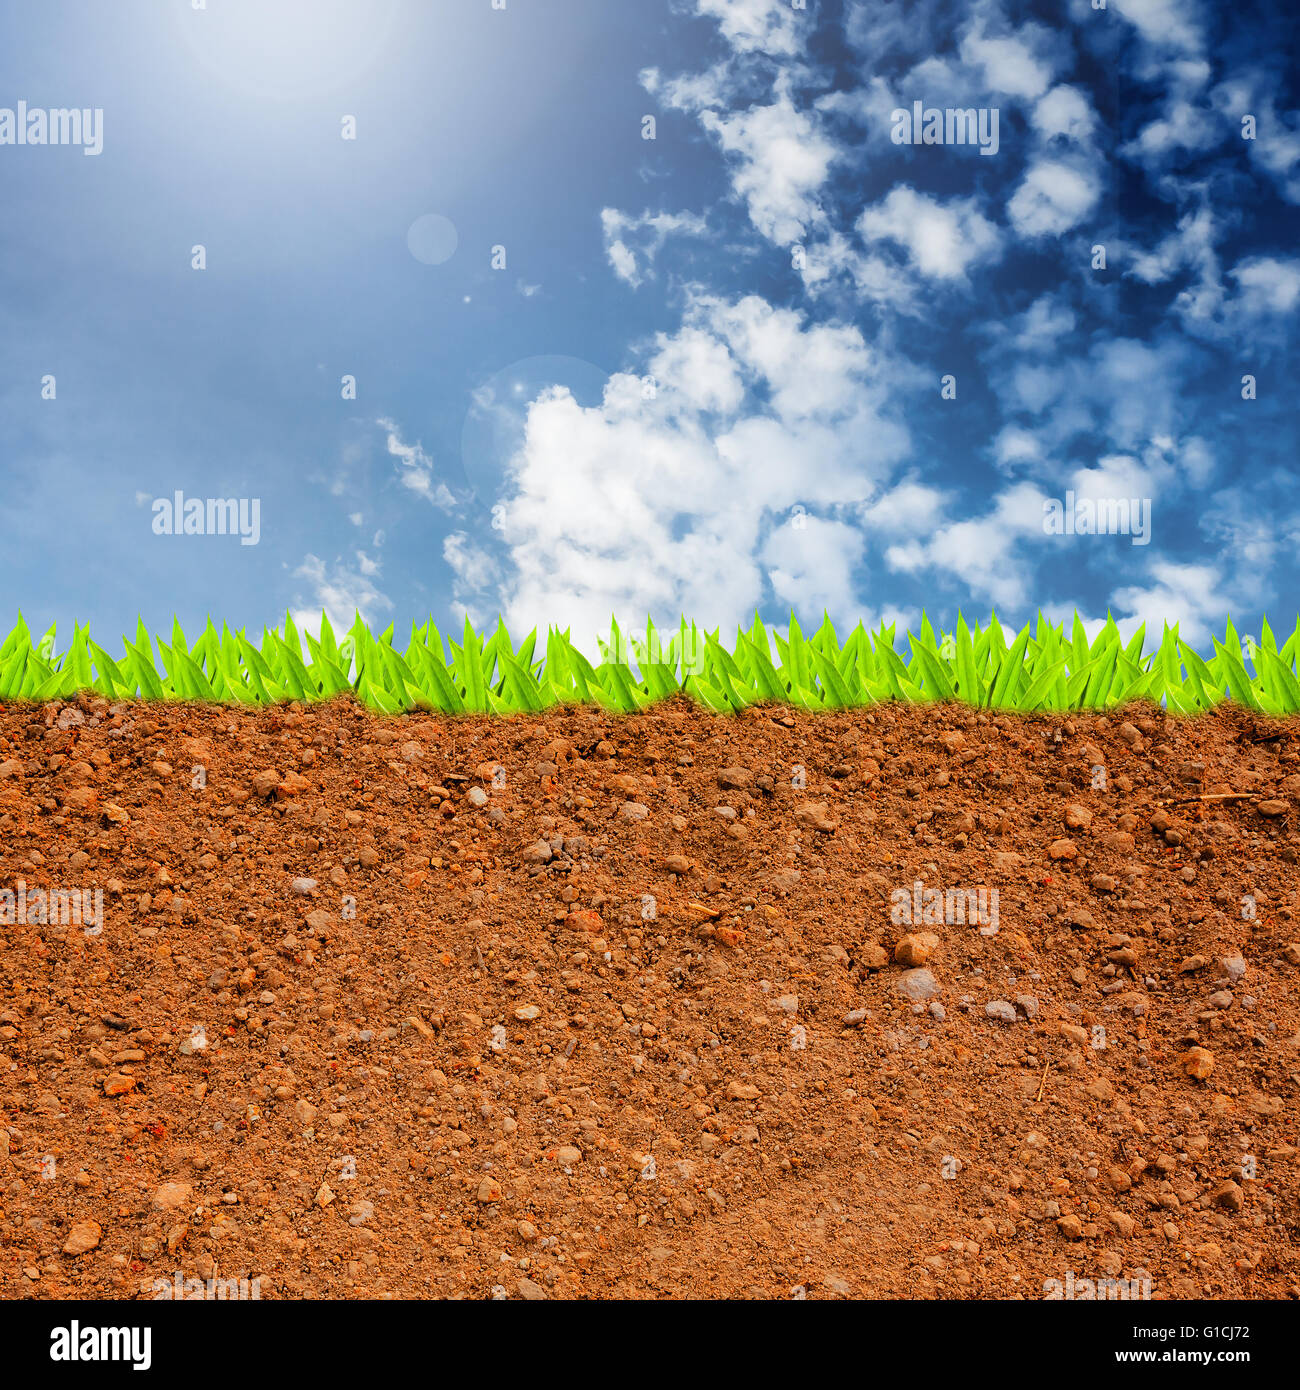 Cross Section Of Grass And Soil Against Blue Sky And